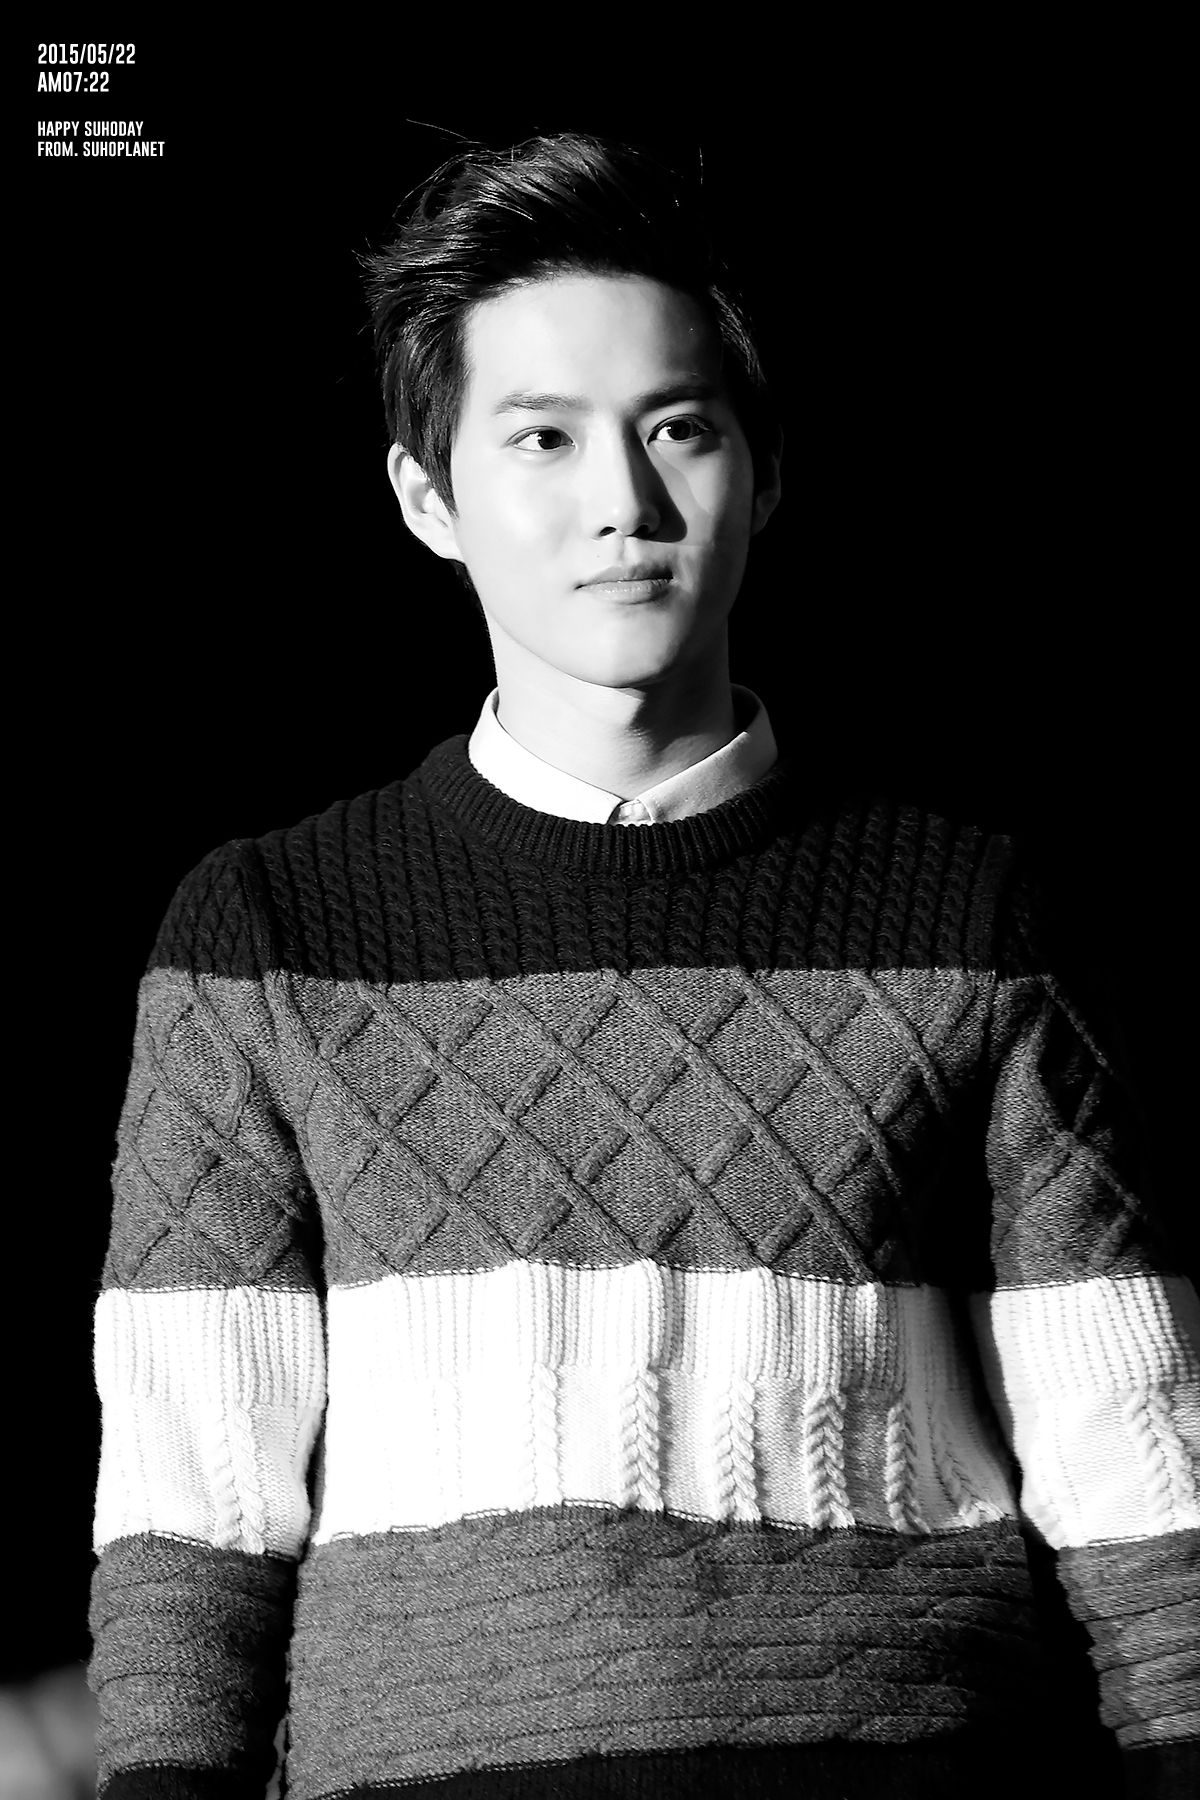 Suho - 131006 SHINee Comeback Special Credit: Suho Planet. (샤이니 컴백)